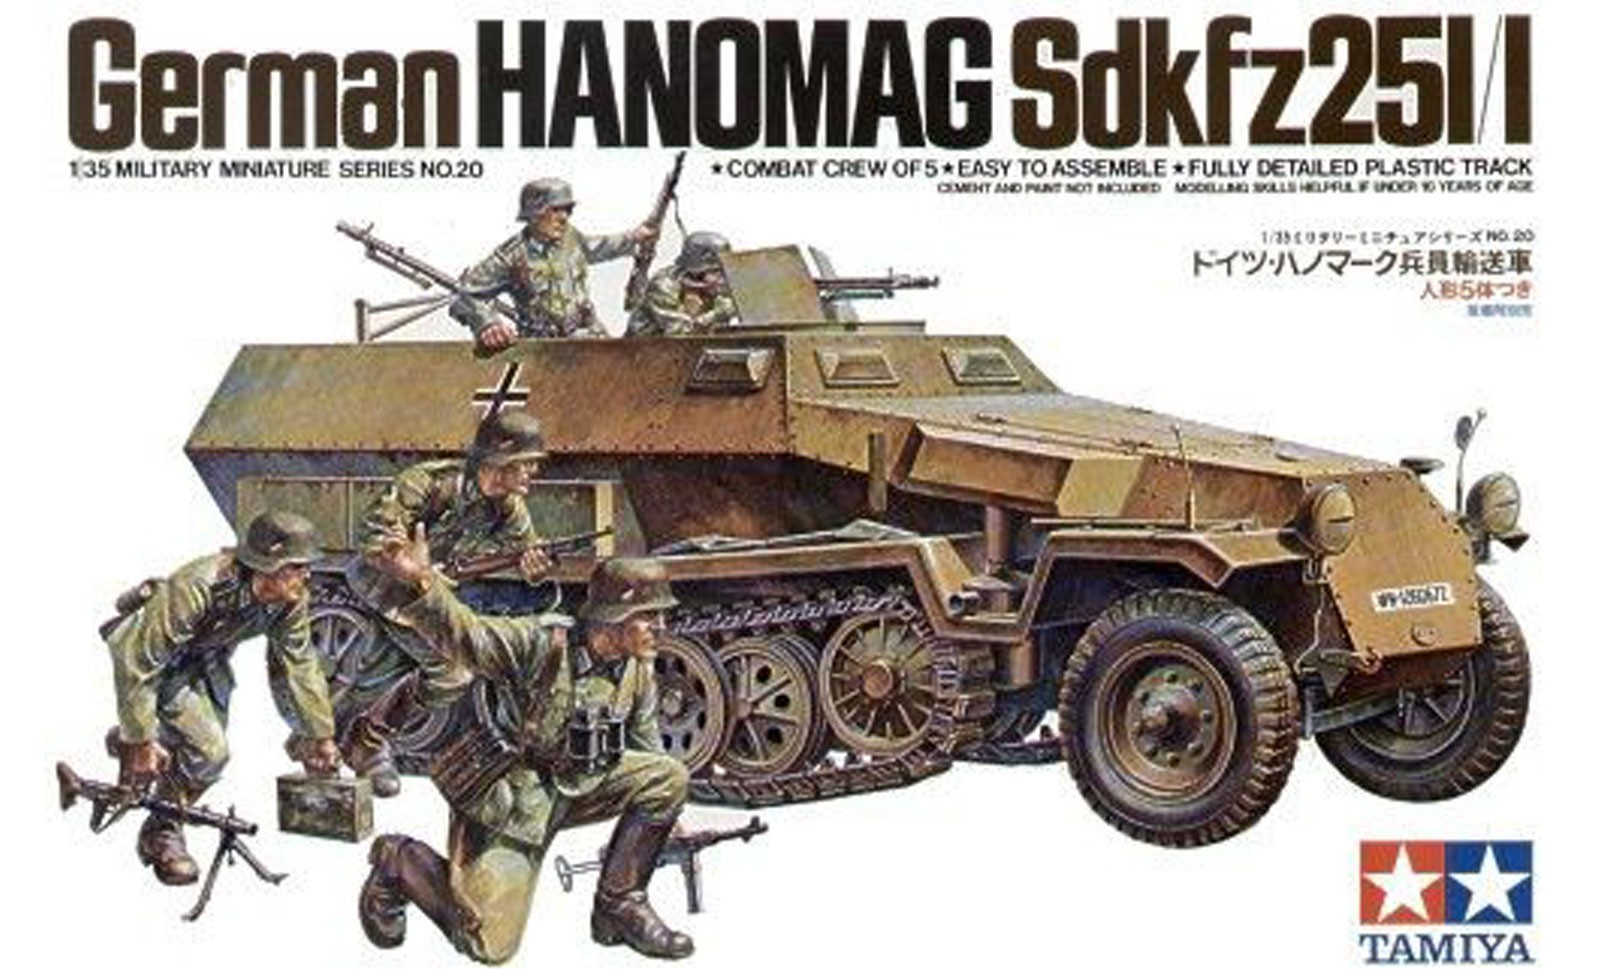 German Hanomag Sdkfz 251/1 Kit - Tamiya 35020 - plastic model kit - 1/35 scale